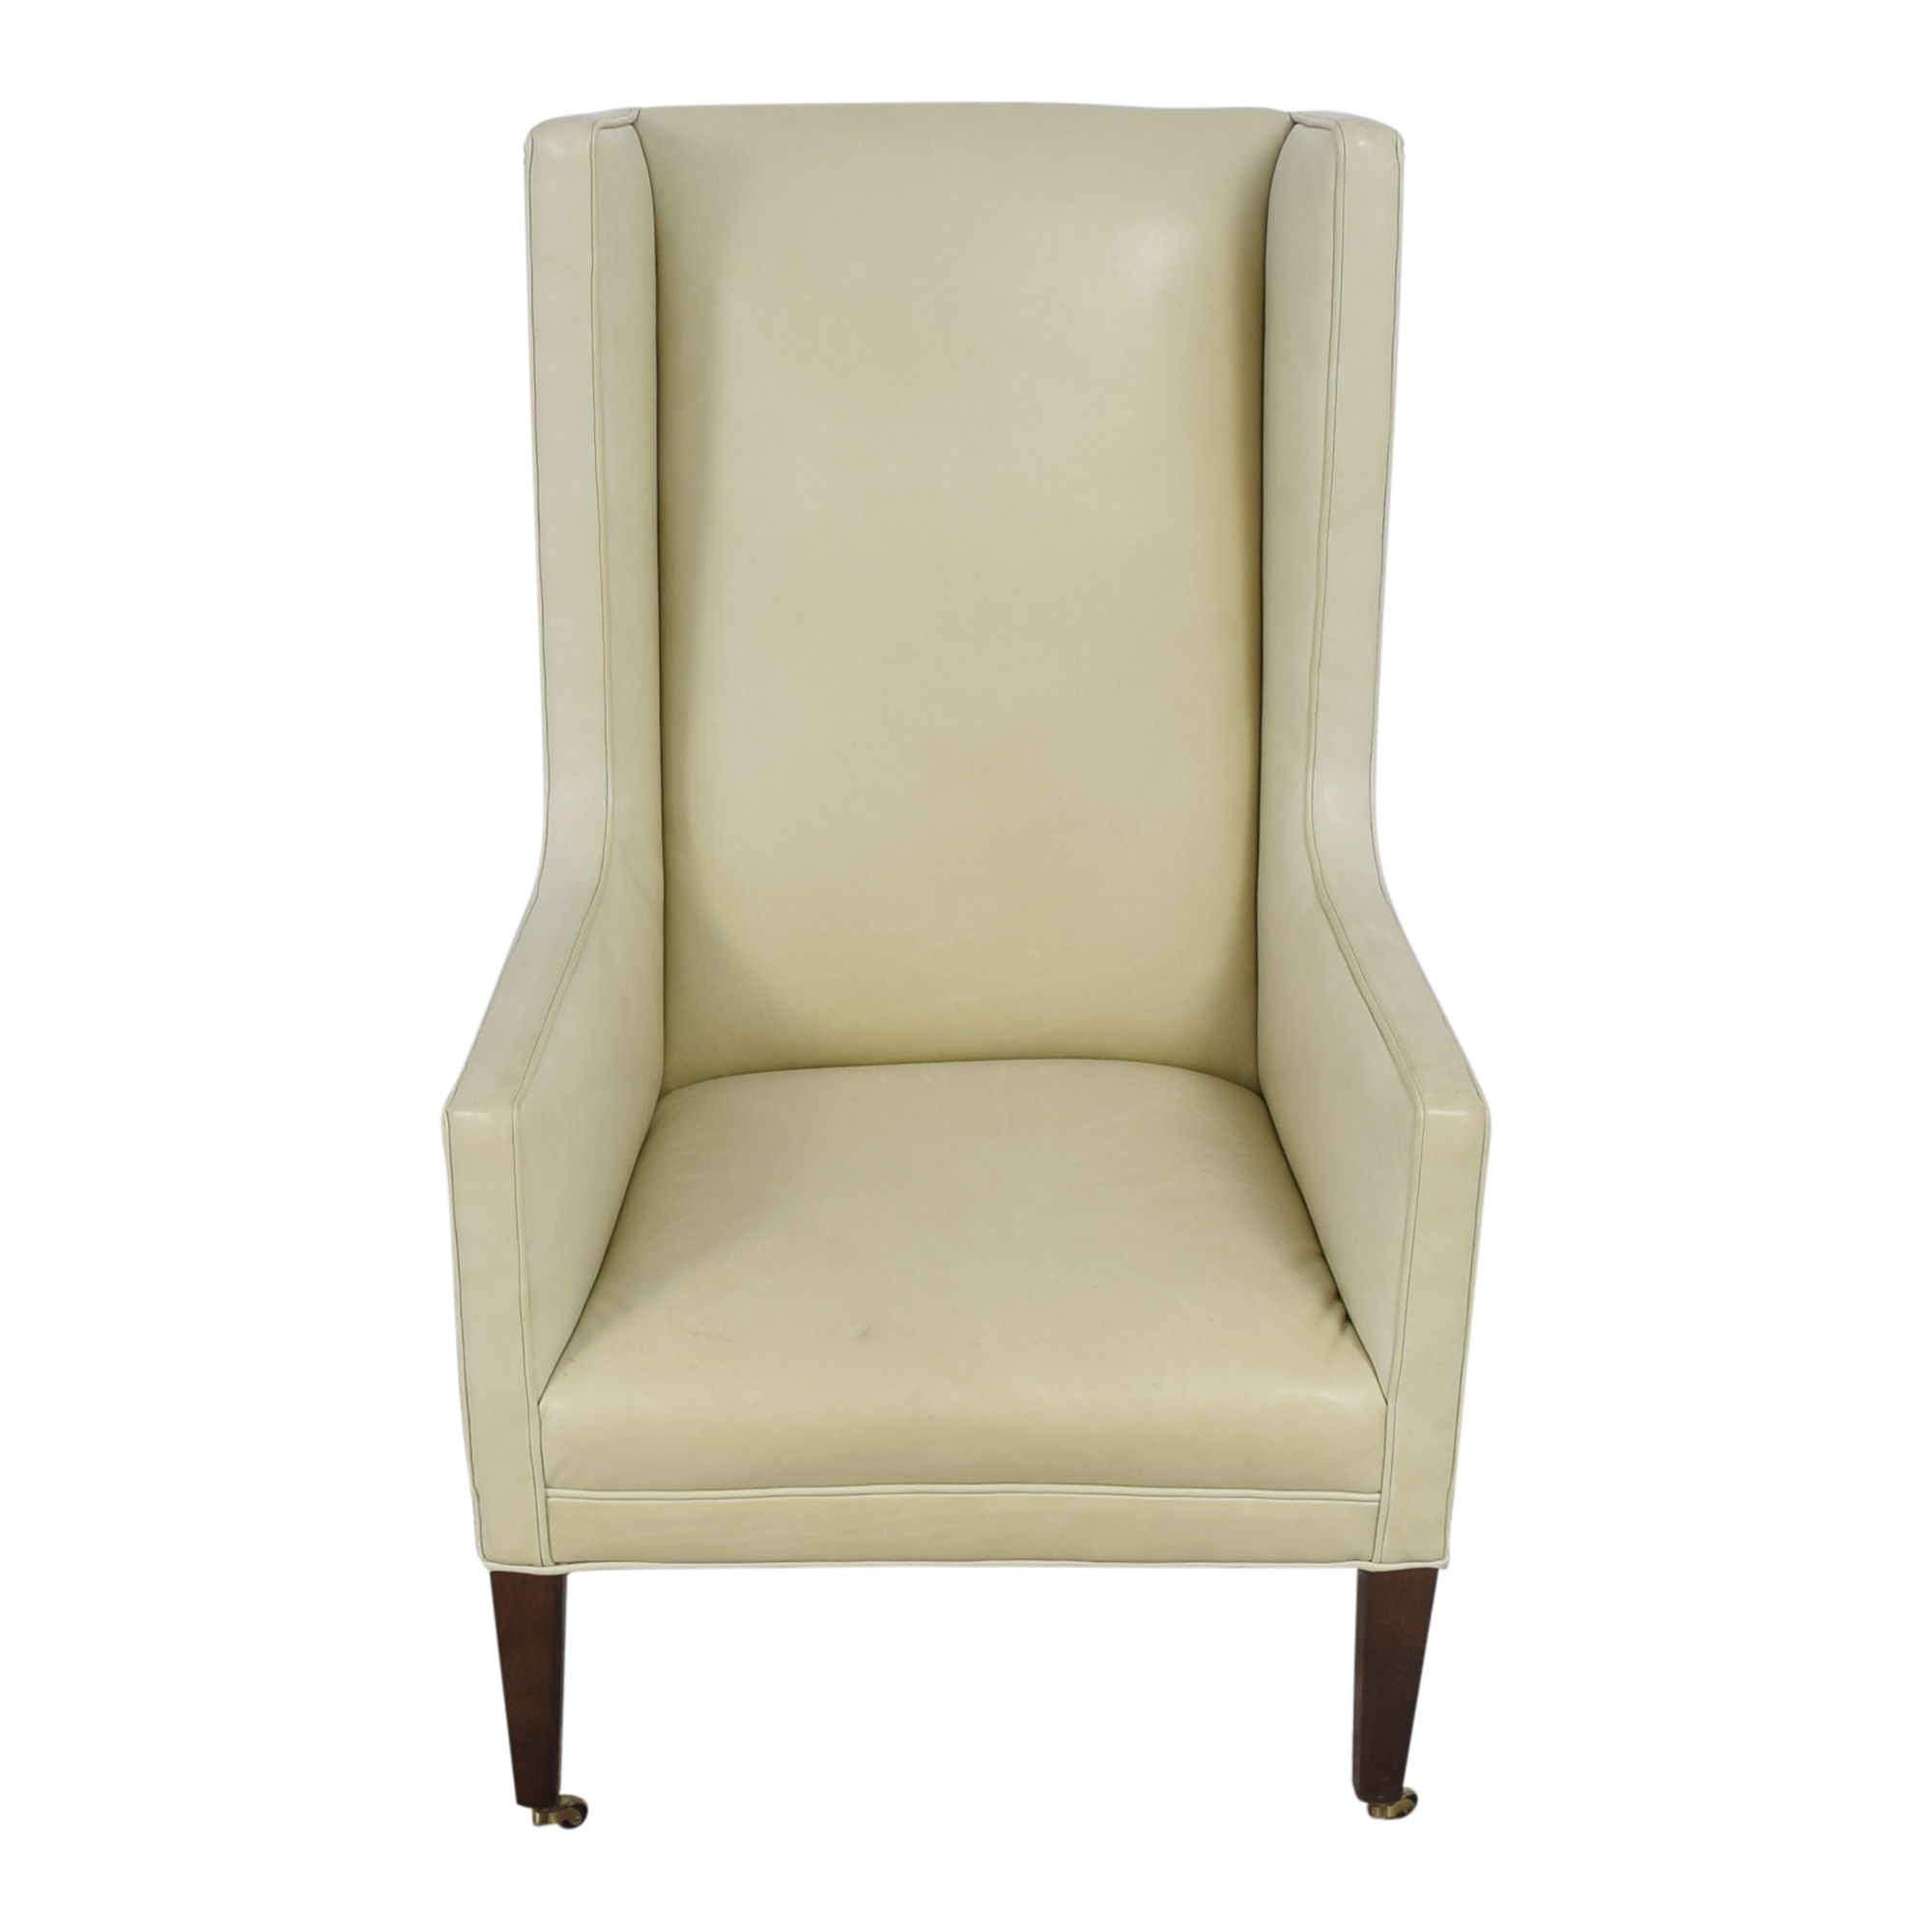 Crate & Barrel Wingback Chair / Chairs